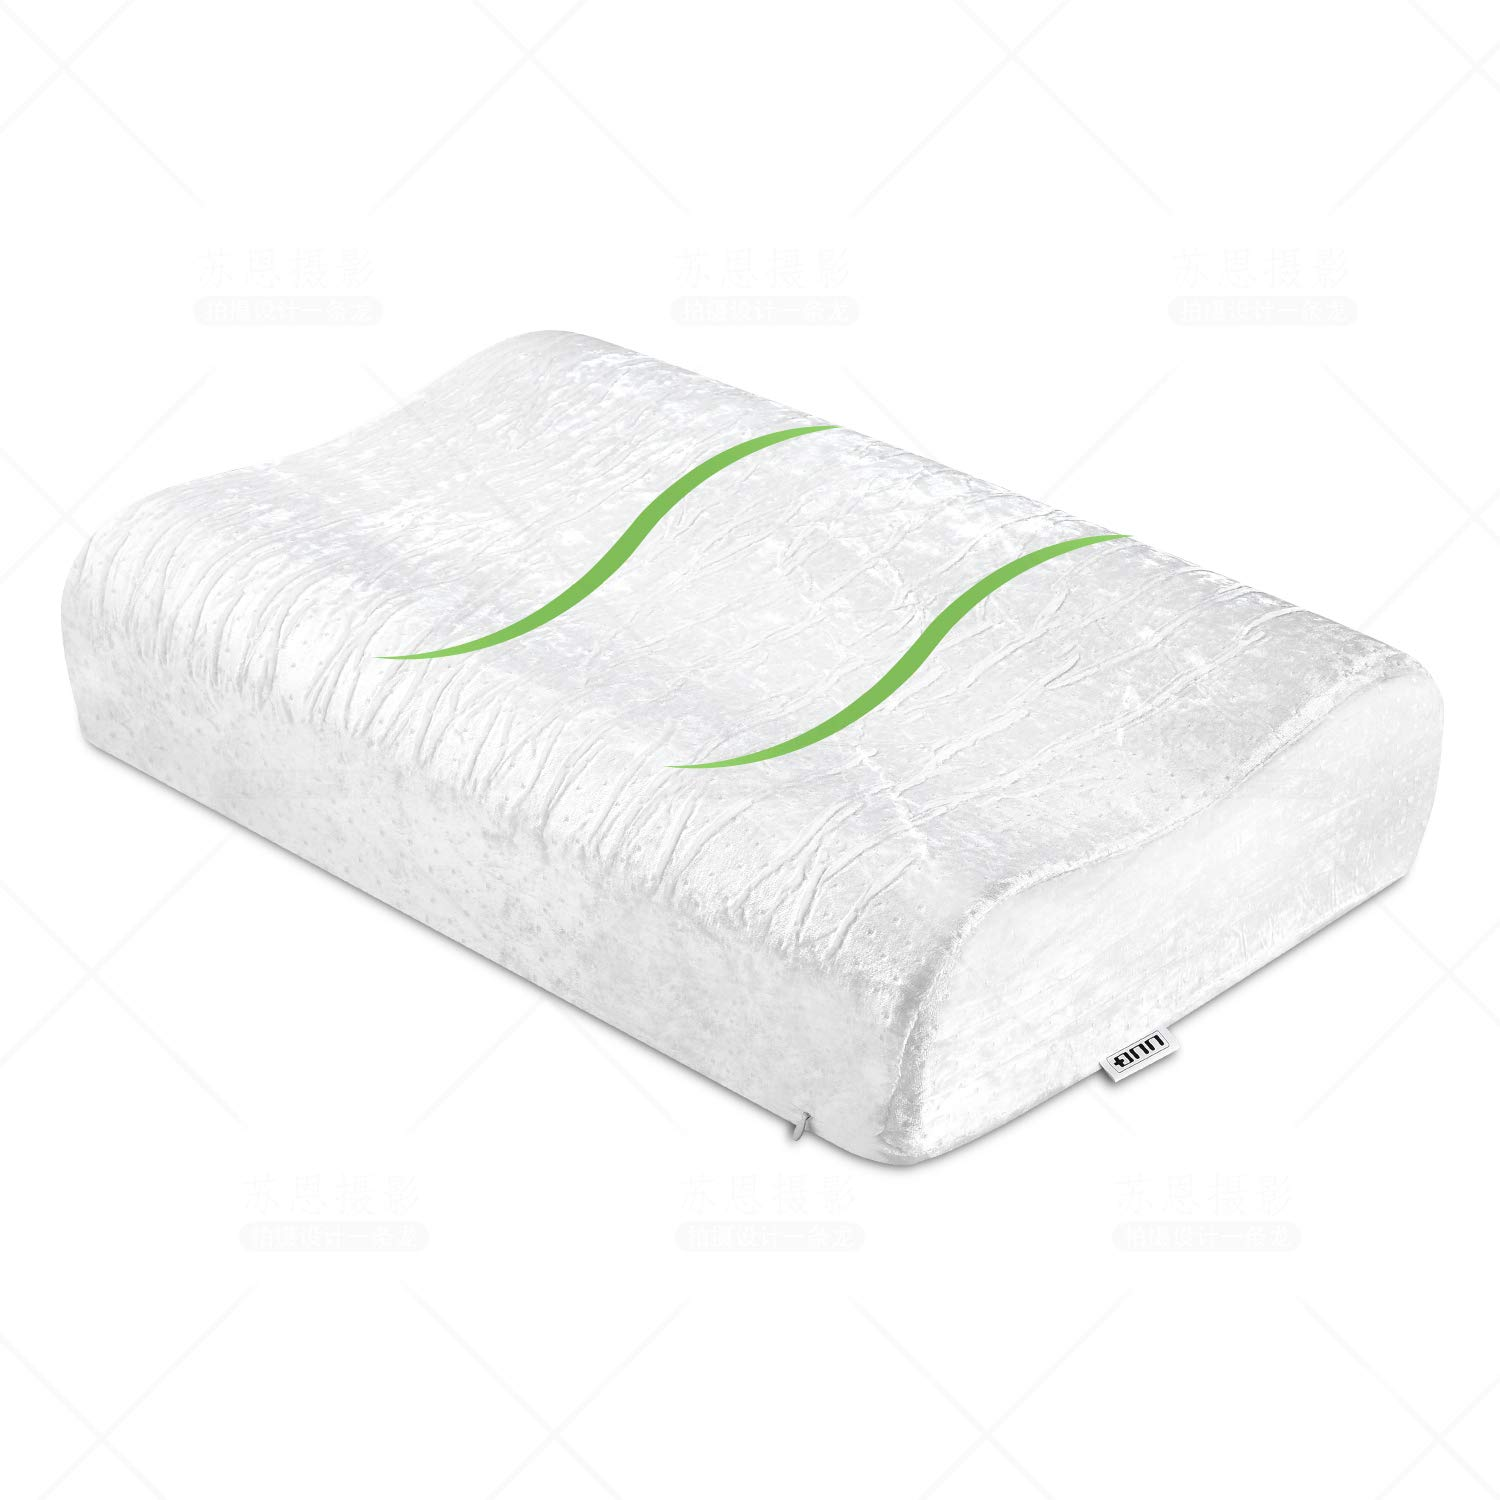 UUQ Memory Foam Cervical Pillow Contour Design for Sleeping, Orthopedic Firm Pillows for Back&Side Sleeper Relieve Shoulder and Neck Pain with 2 Washable Velvet Covers